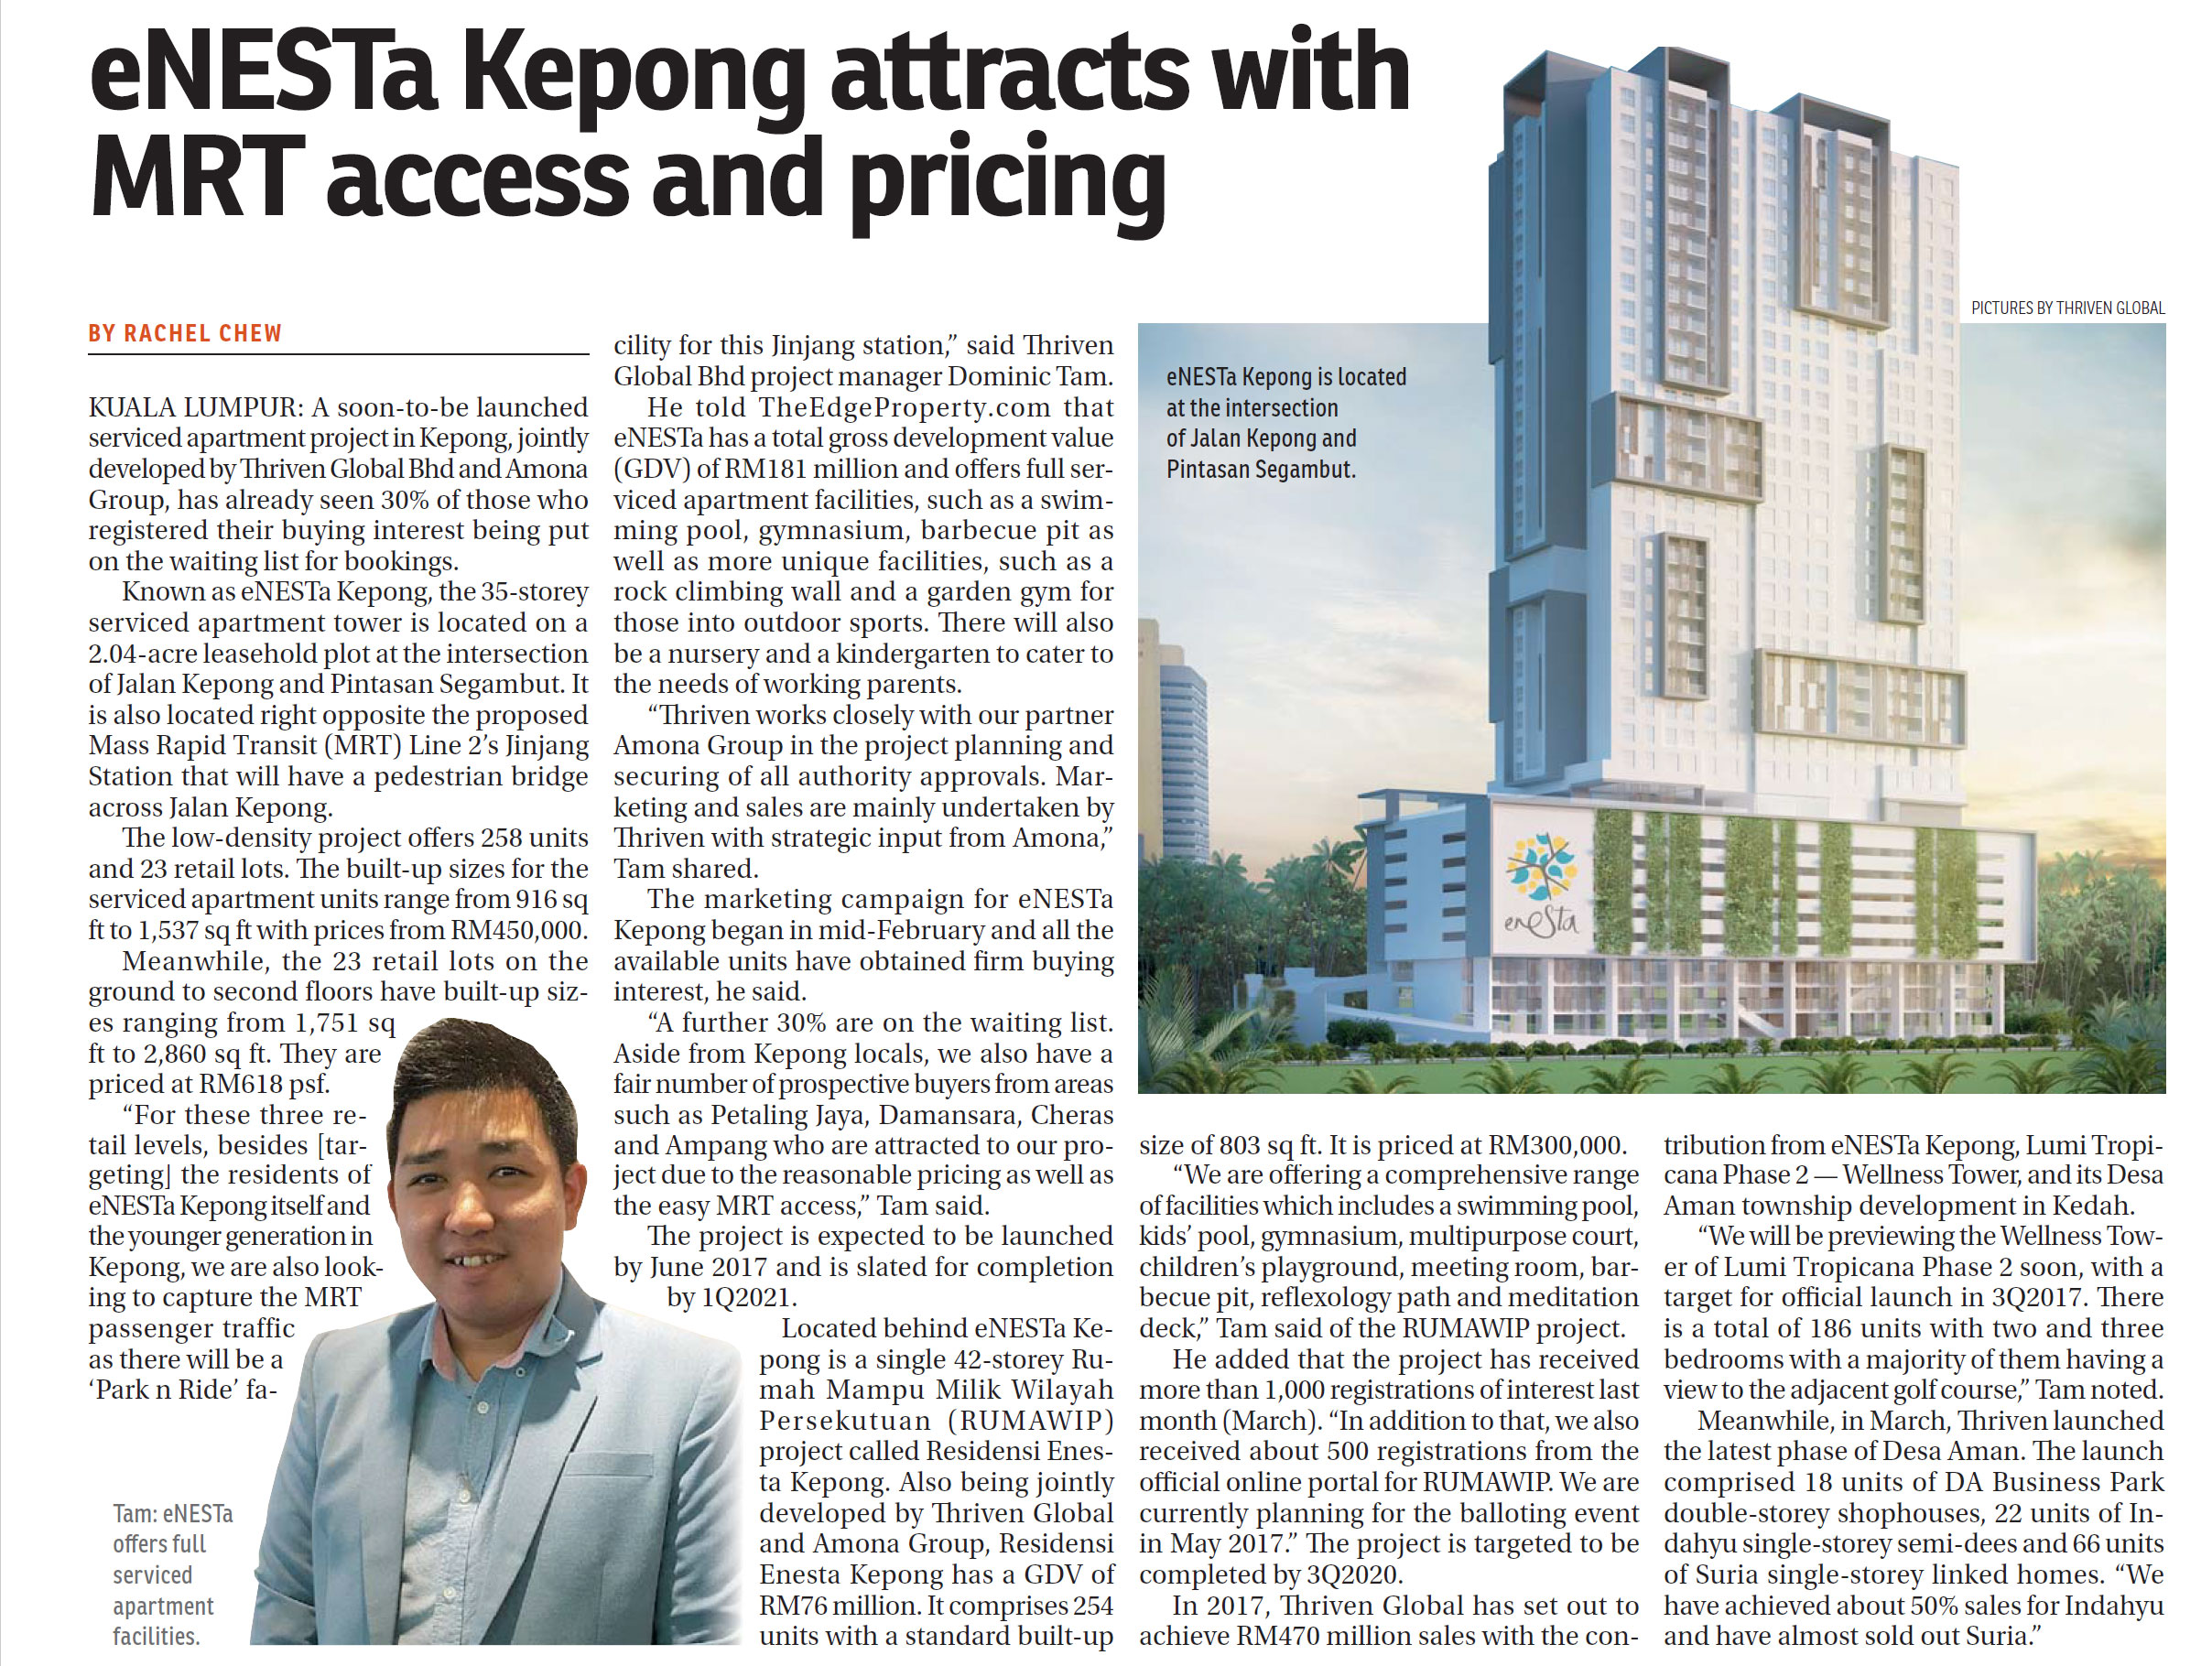 eNESTa Kepong attracts with MRT access & pricing